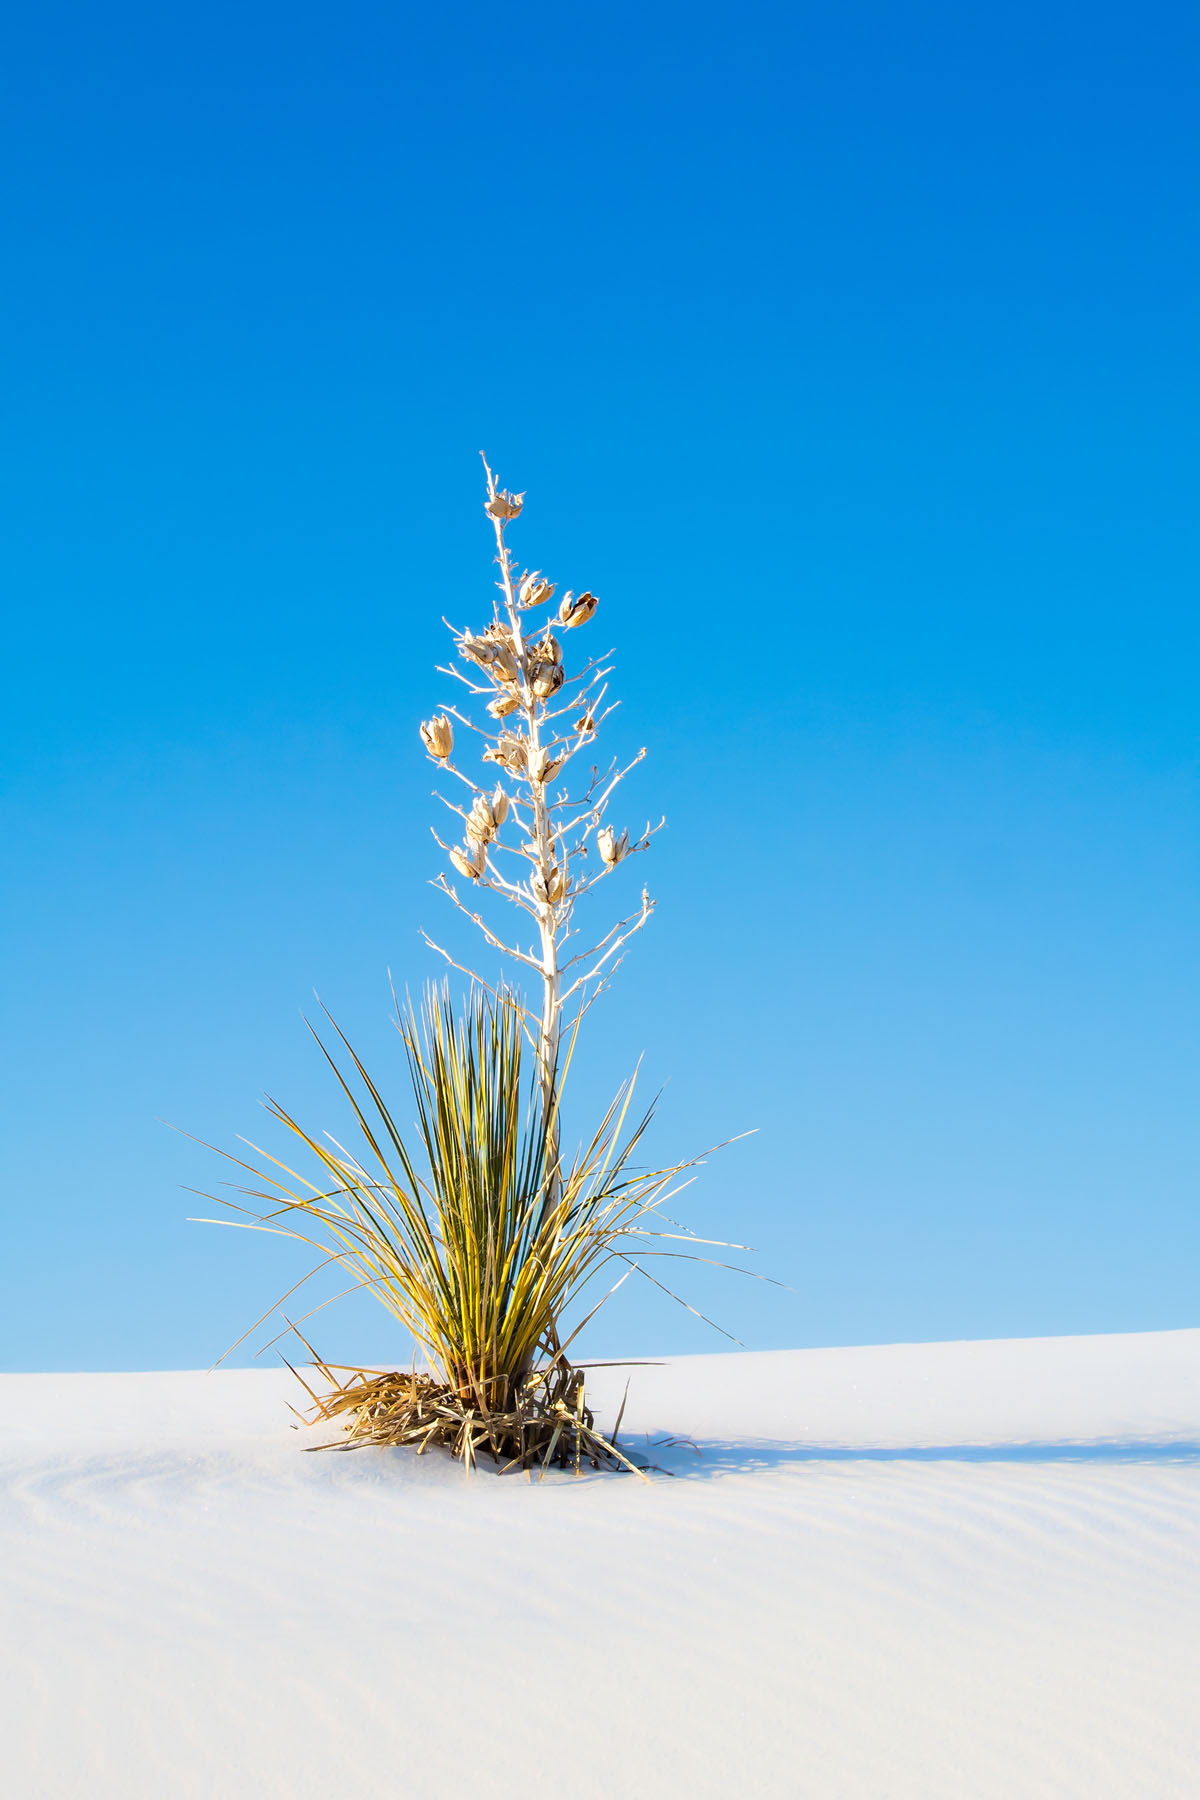 SORT OF A MONUMENT - I took this shot in White Sands National Monument in New Mexico.